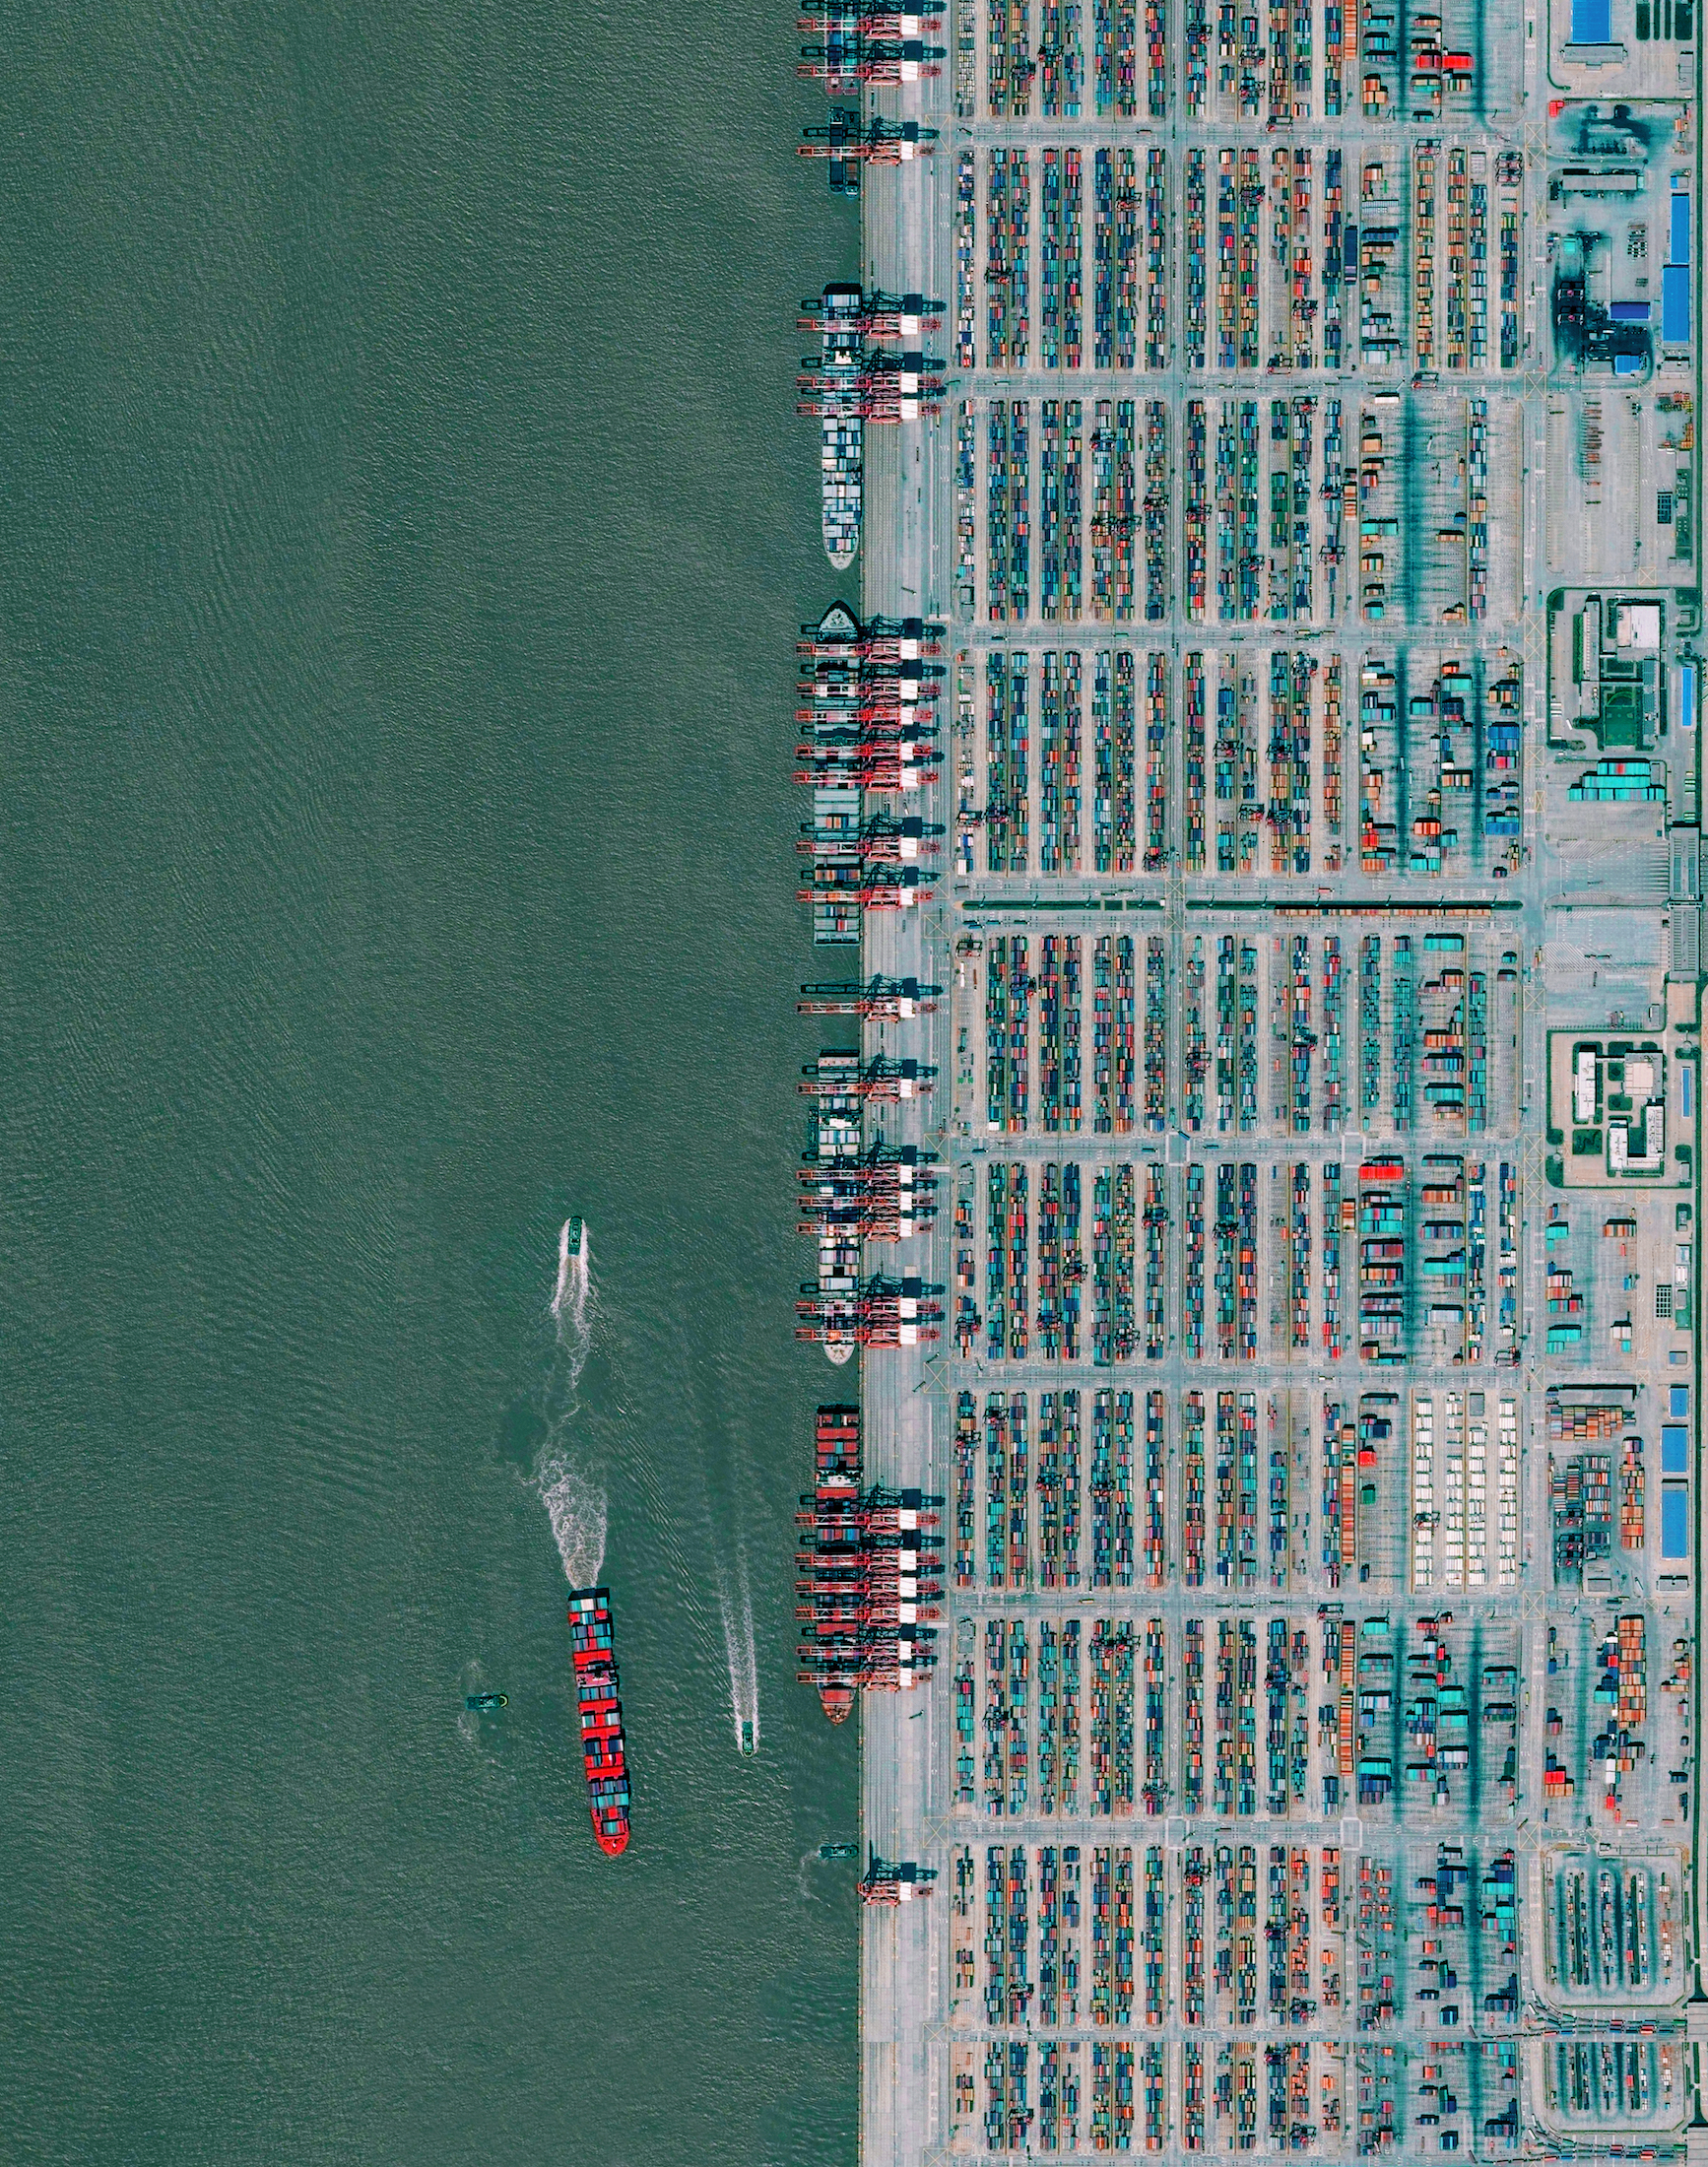 8/15/2016   Port of Shanghai   Shanghai, China  30°37′35″N 122°03′53″E     The Port of Shanghai is the world's busiest container port, handling more than 35 million TEUs (approximately 776 million tons) of cargo every year. That weight is roughly equal to 1.7 times the mass of all humans living on the planet.